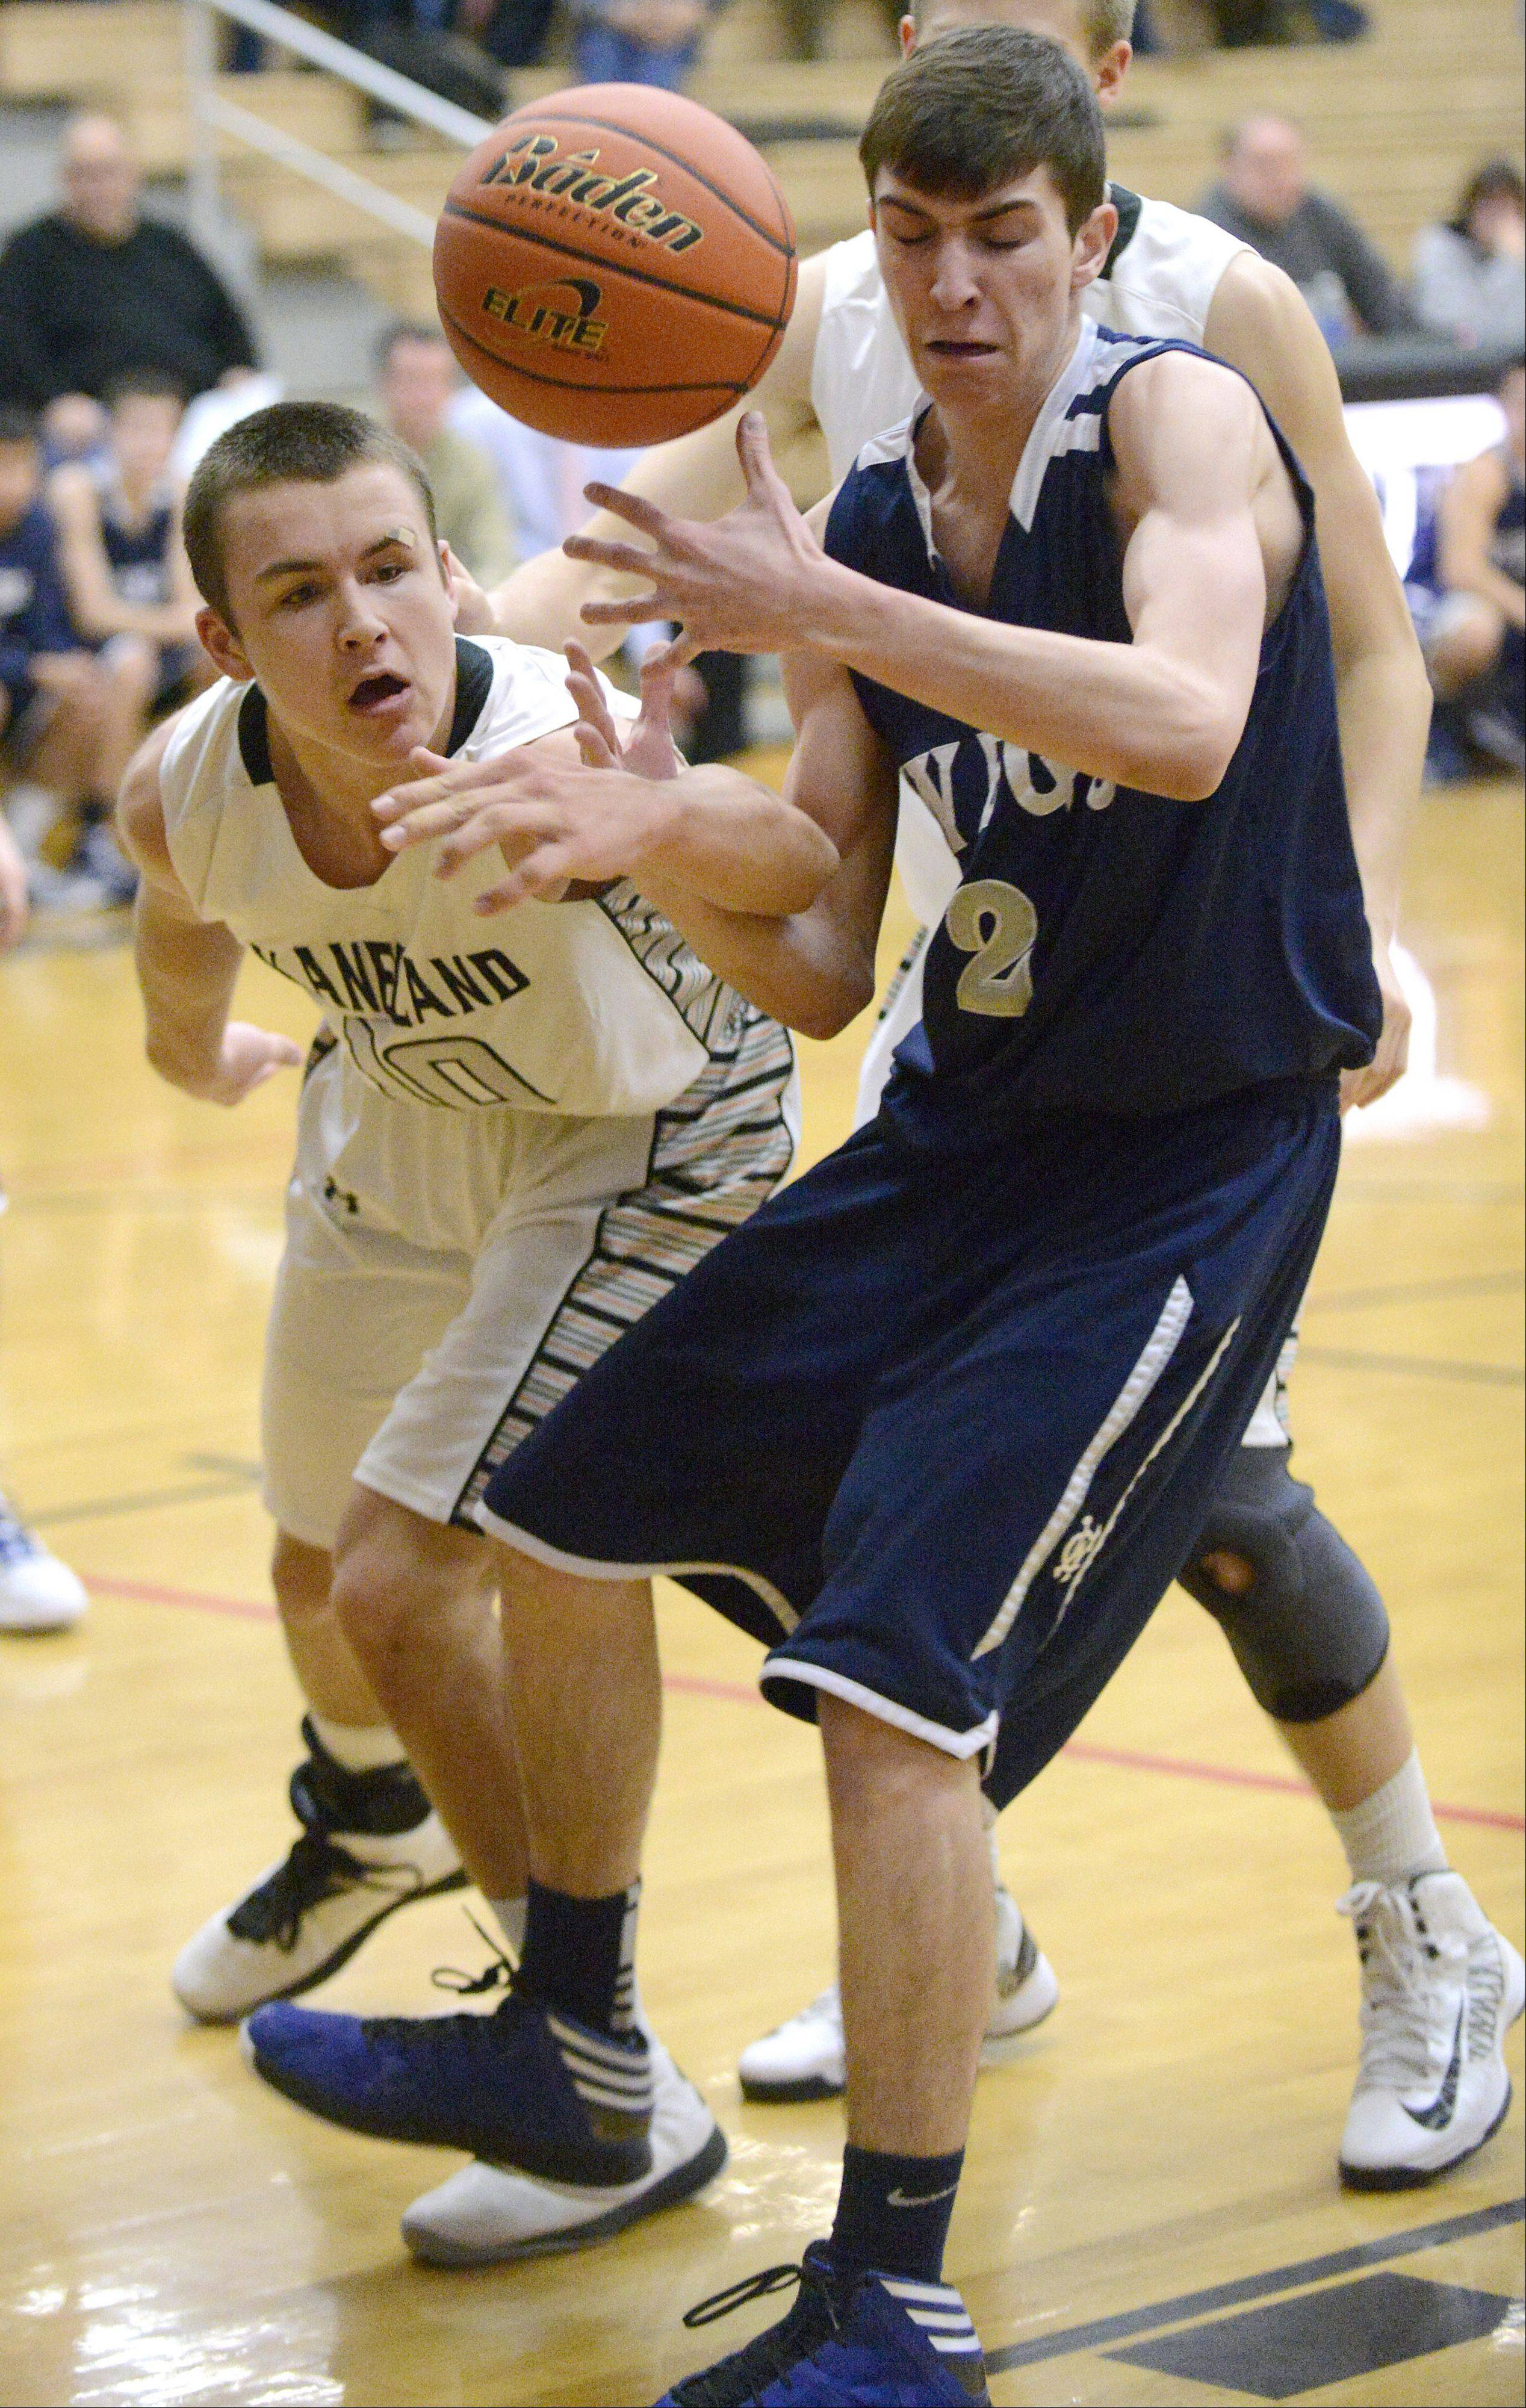 West Chicago's Jimmy Rizzo and Kaneland's Tyler Carlson fight for a loose ball in the second quarter.